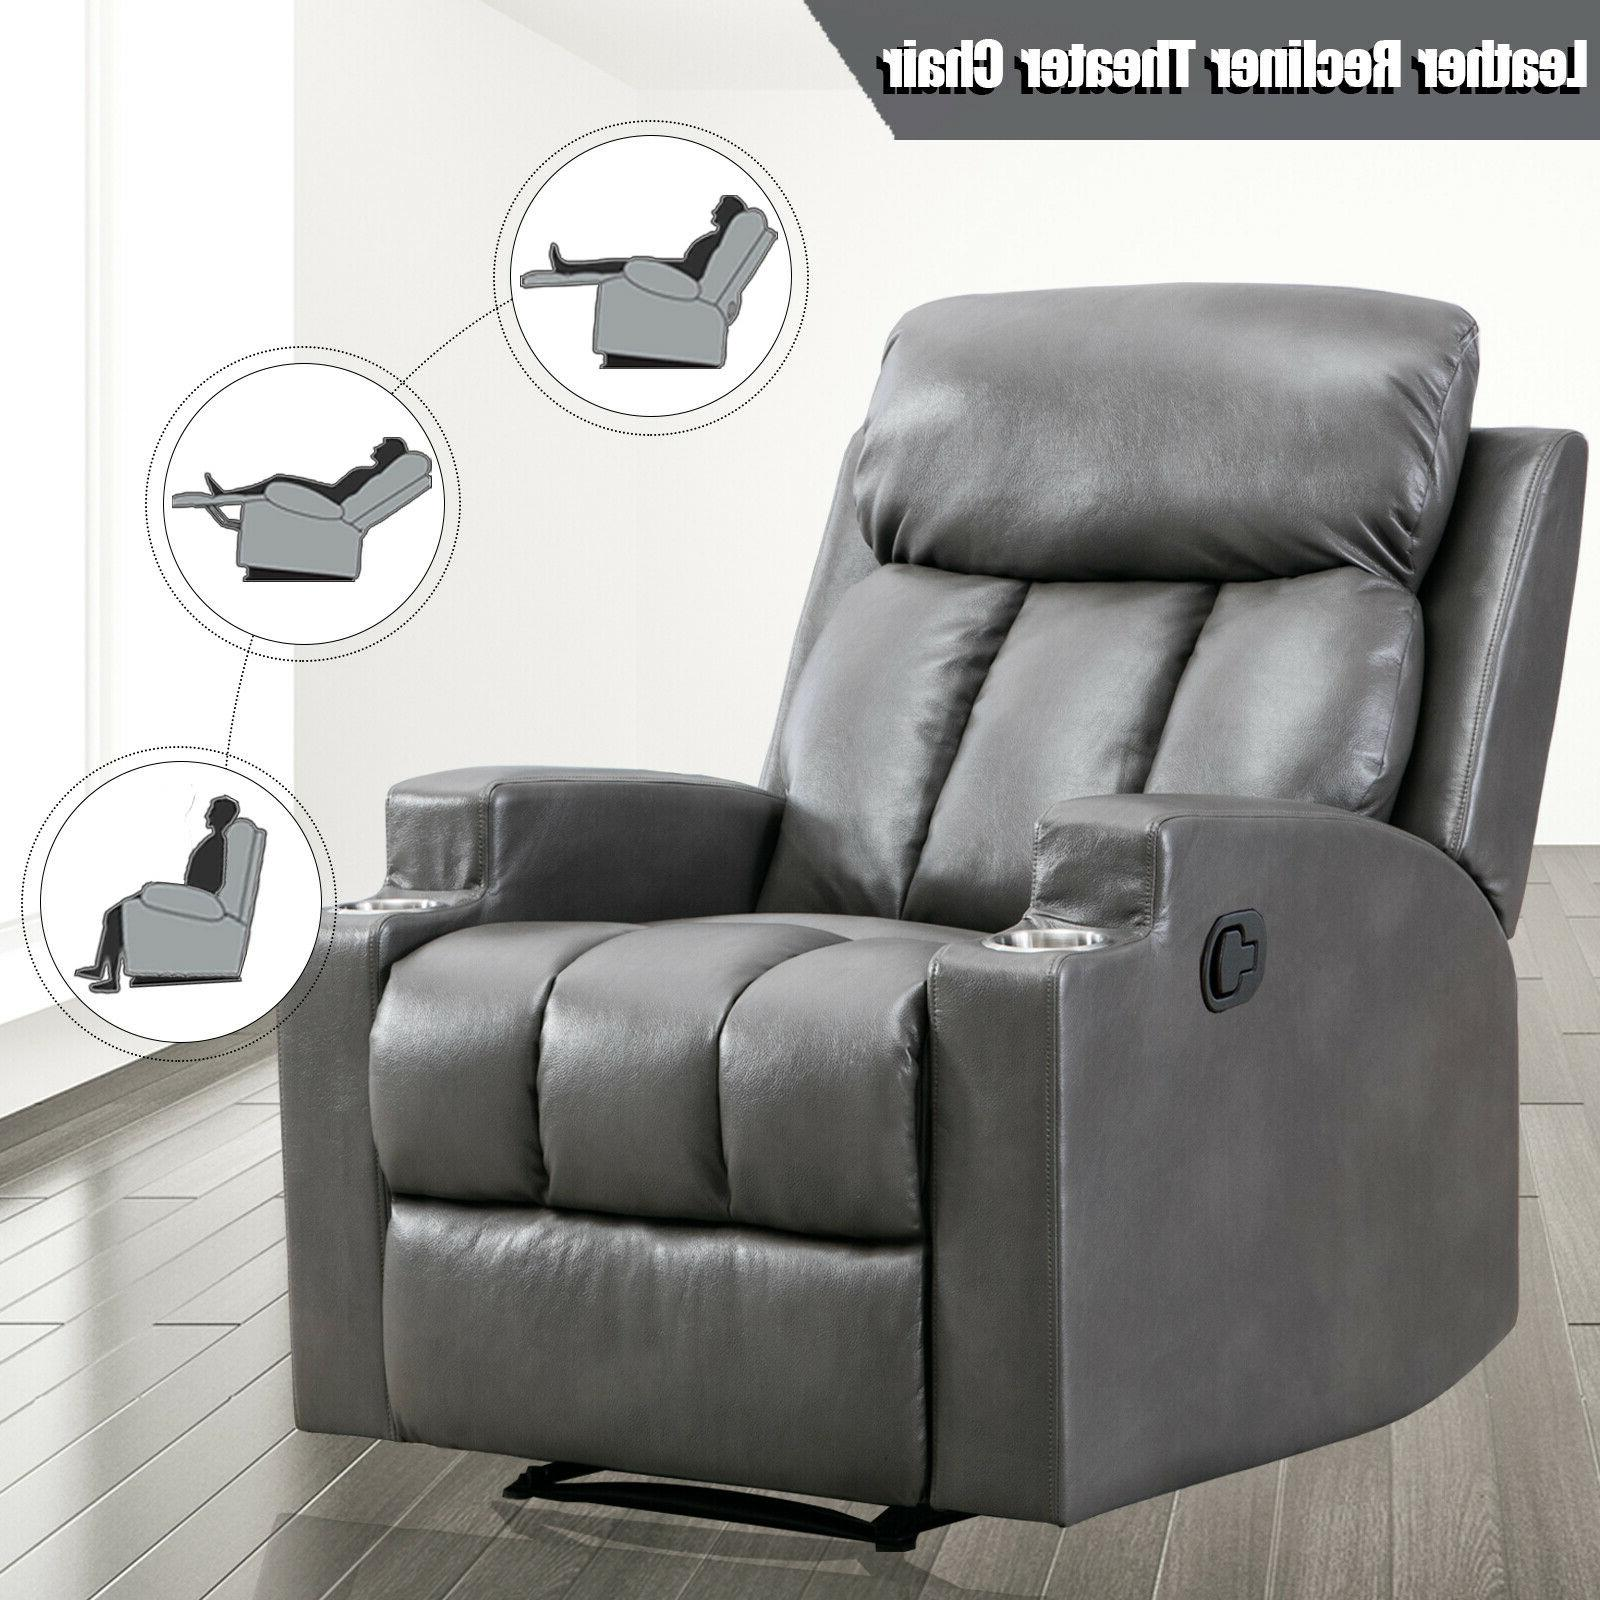 leather recliner chair thick backrest sofa w